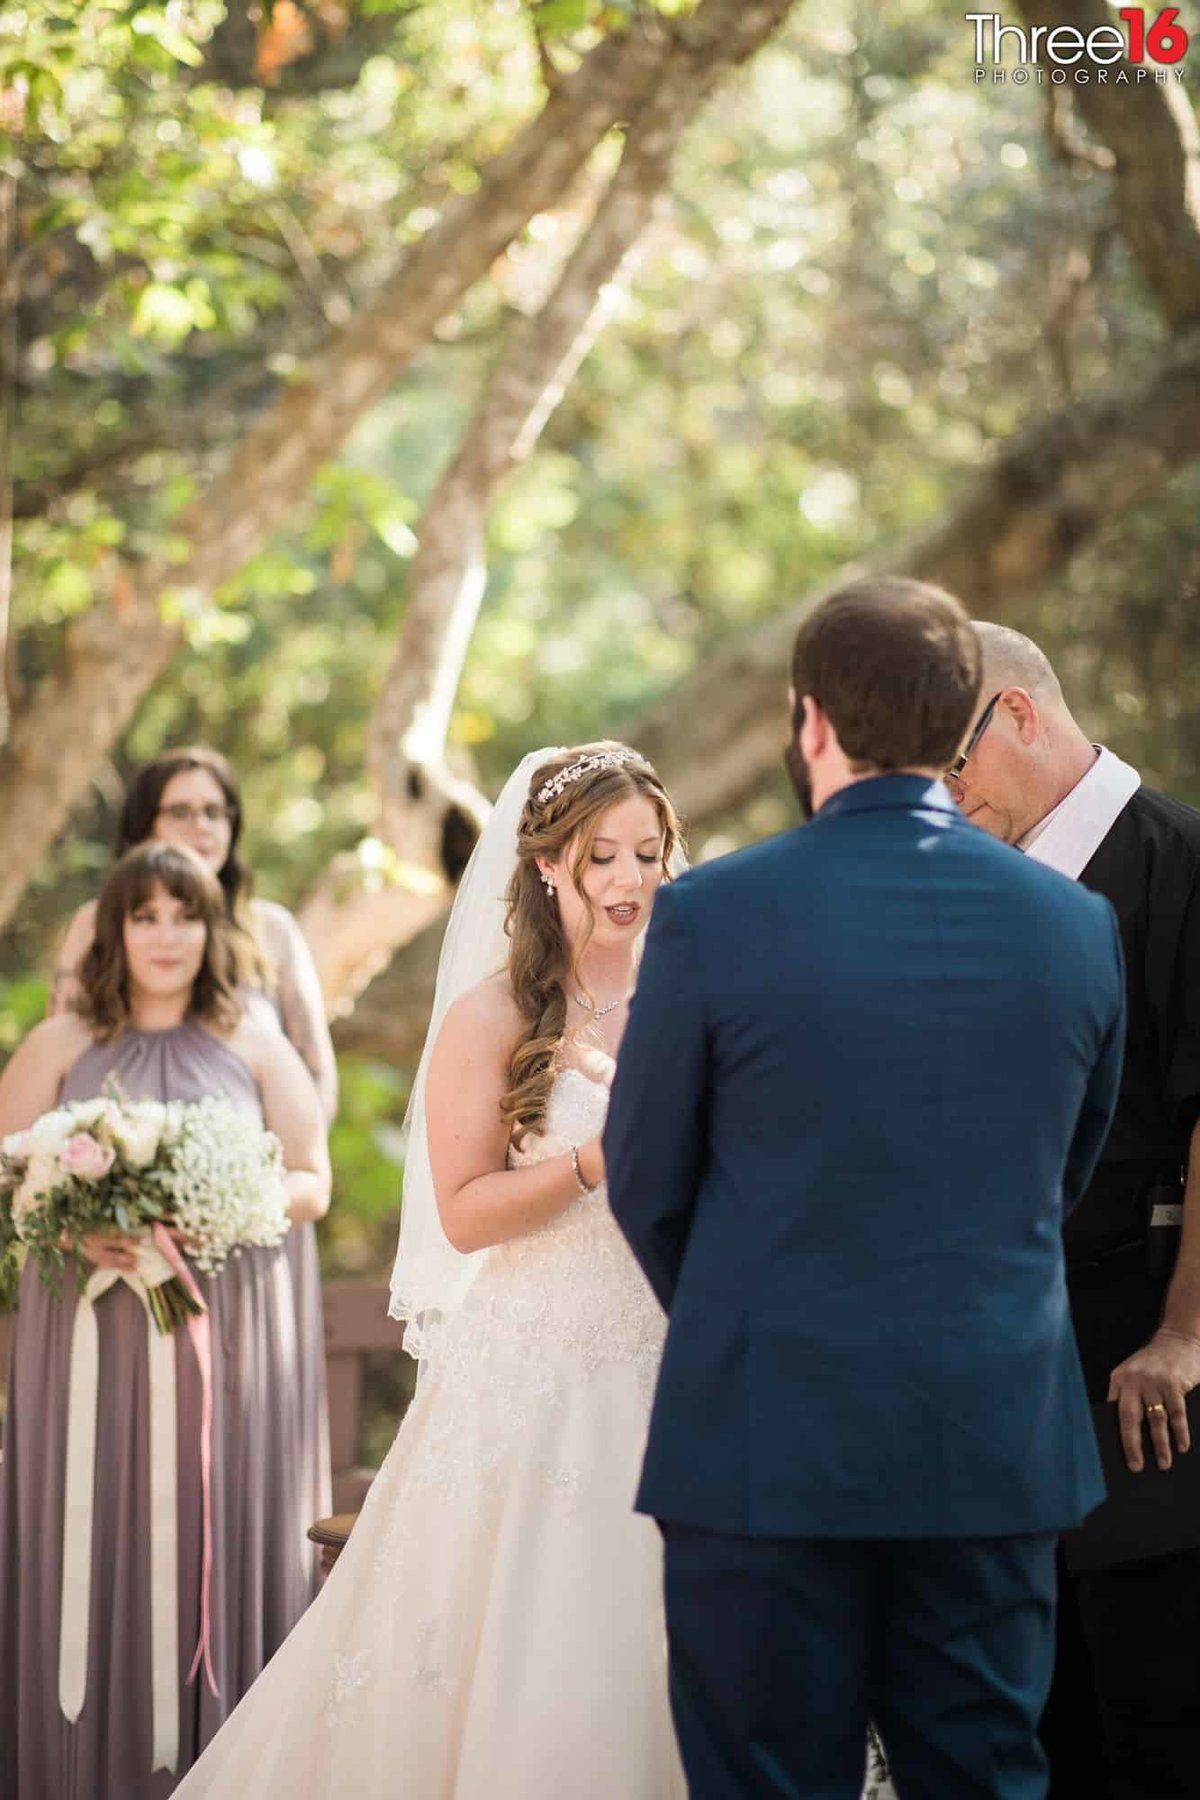 Oak Canyon Nature Center Wedding Anaheim California wedding photographer Ceremony Bride and Groom Vows_1